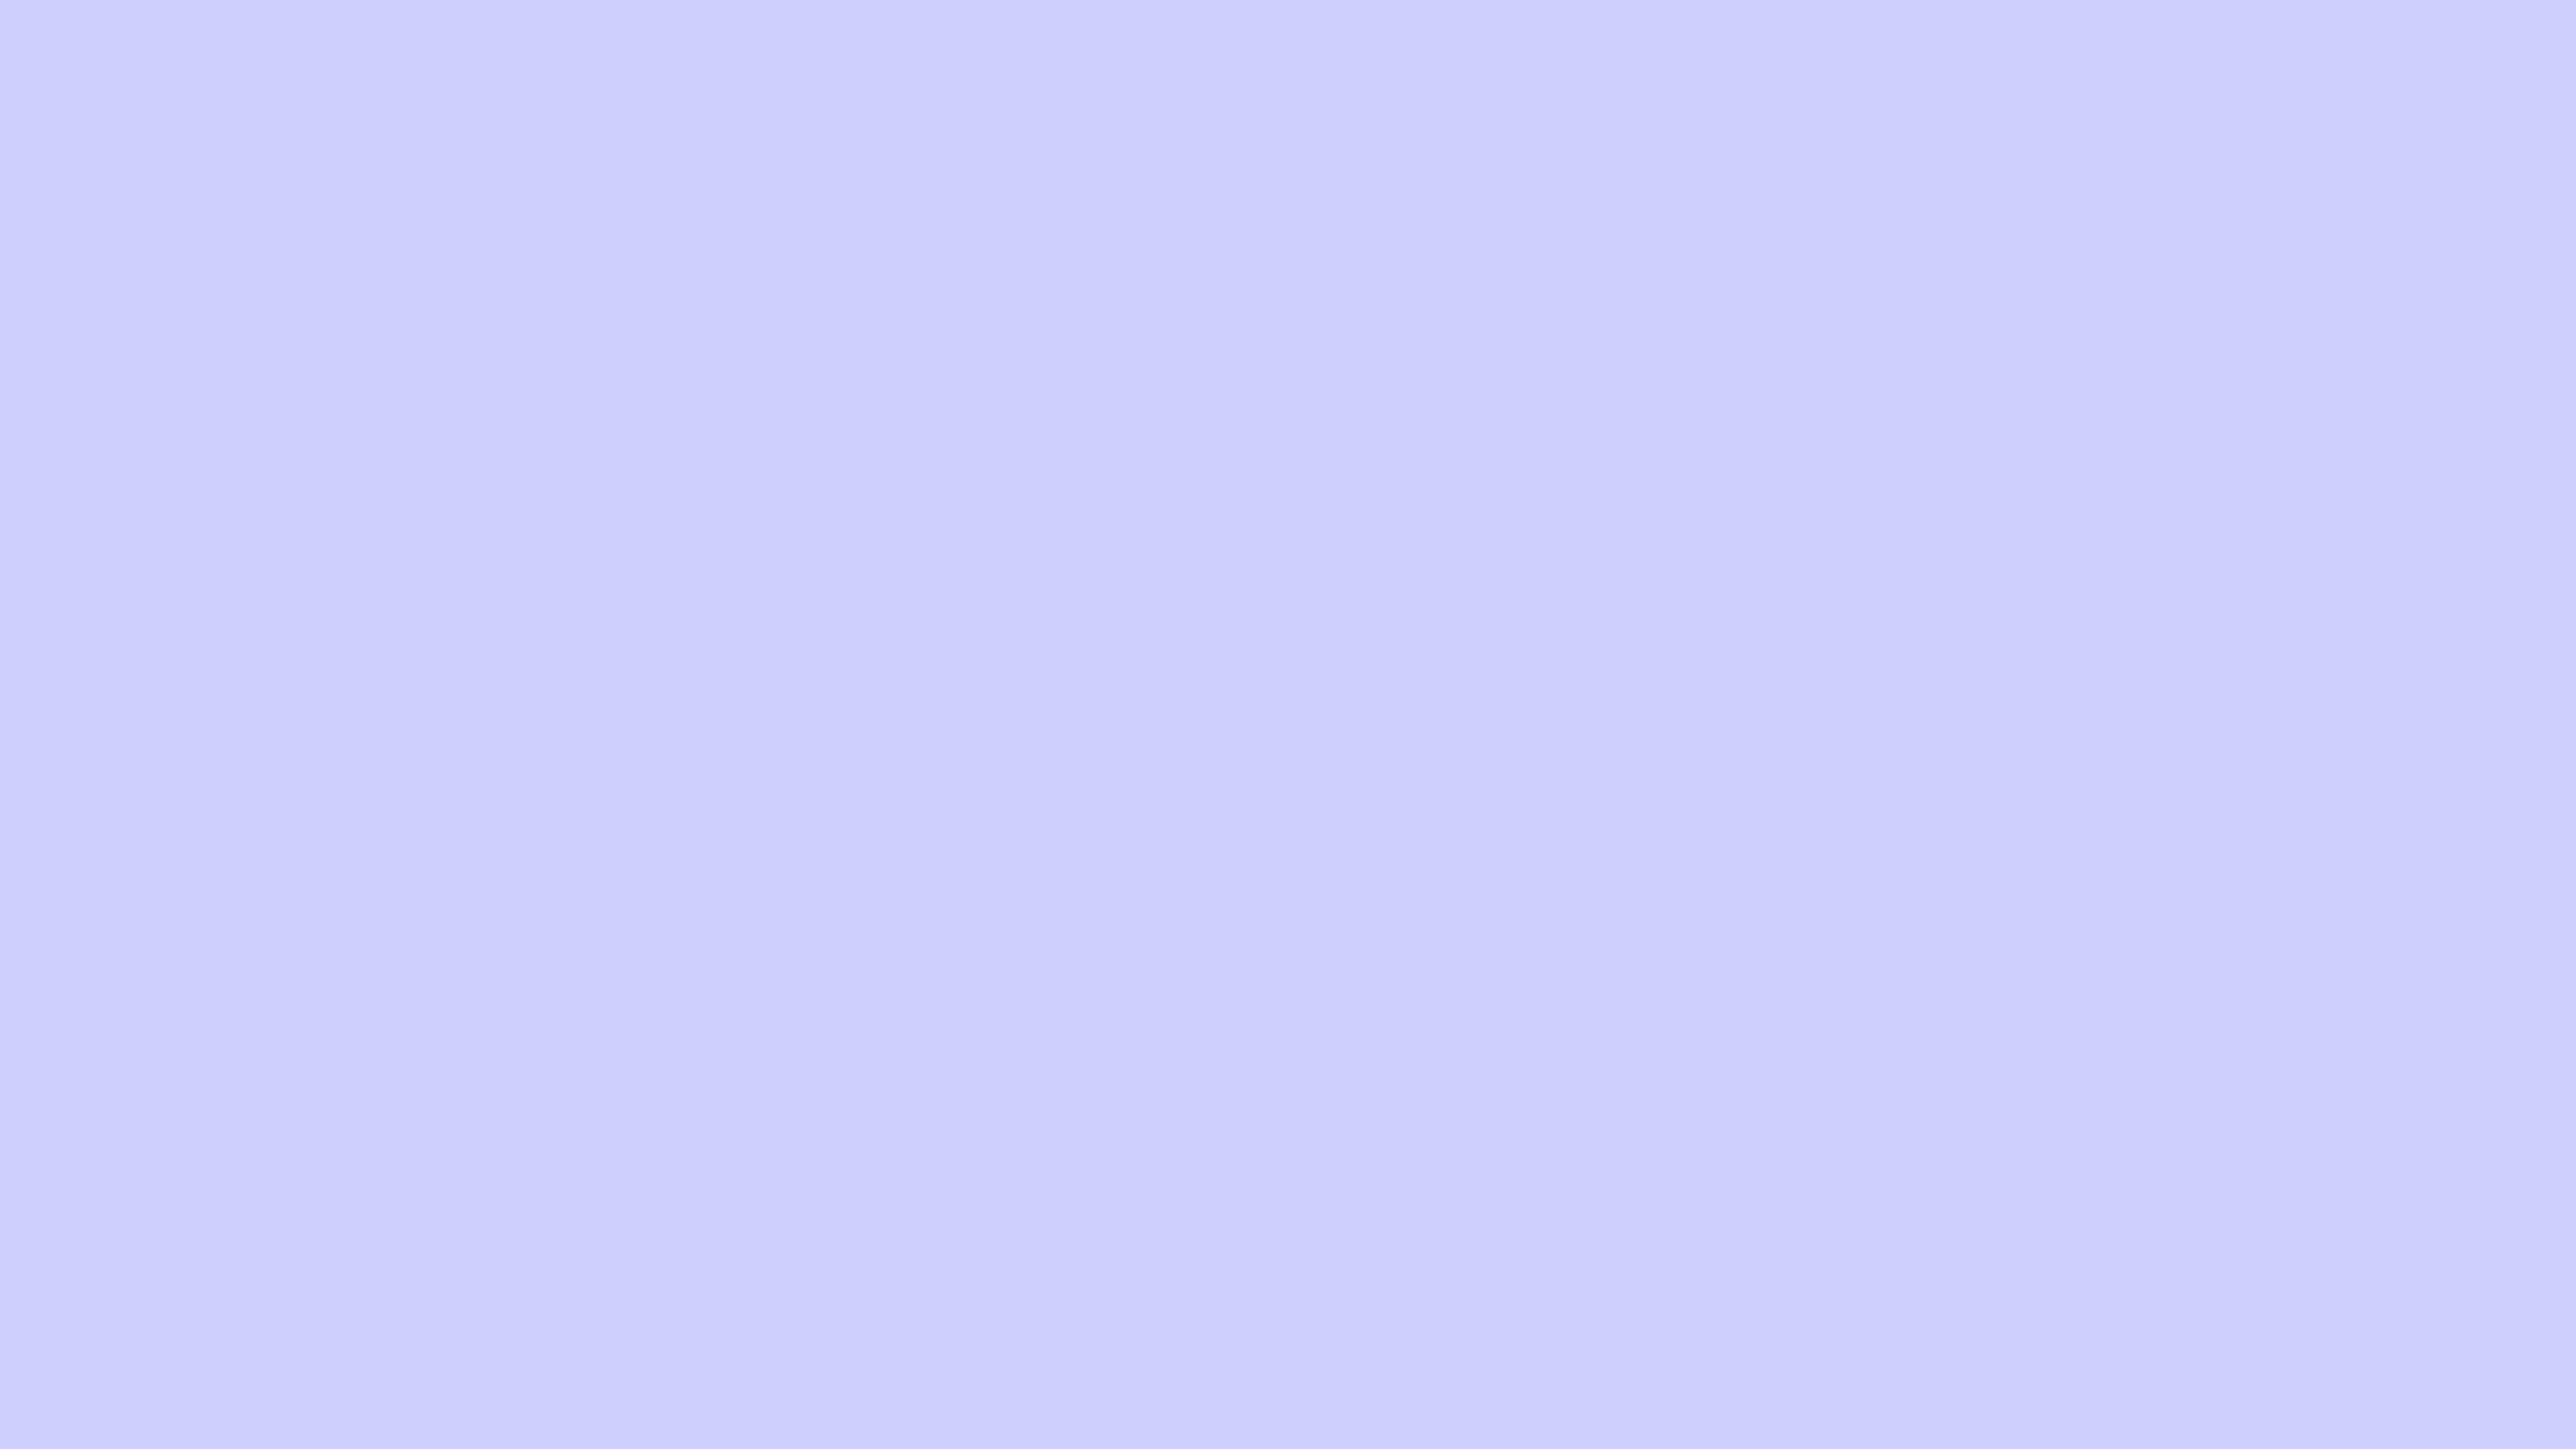 4096x2304 Periwinkle Solid Color Background